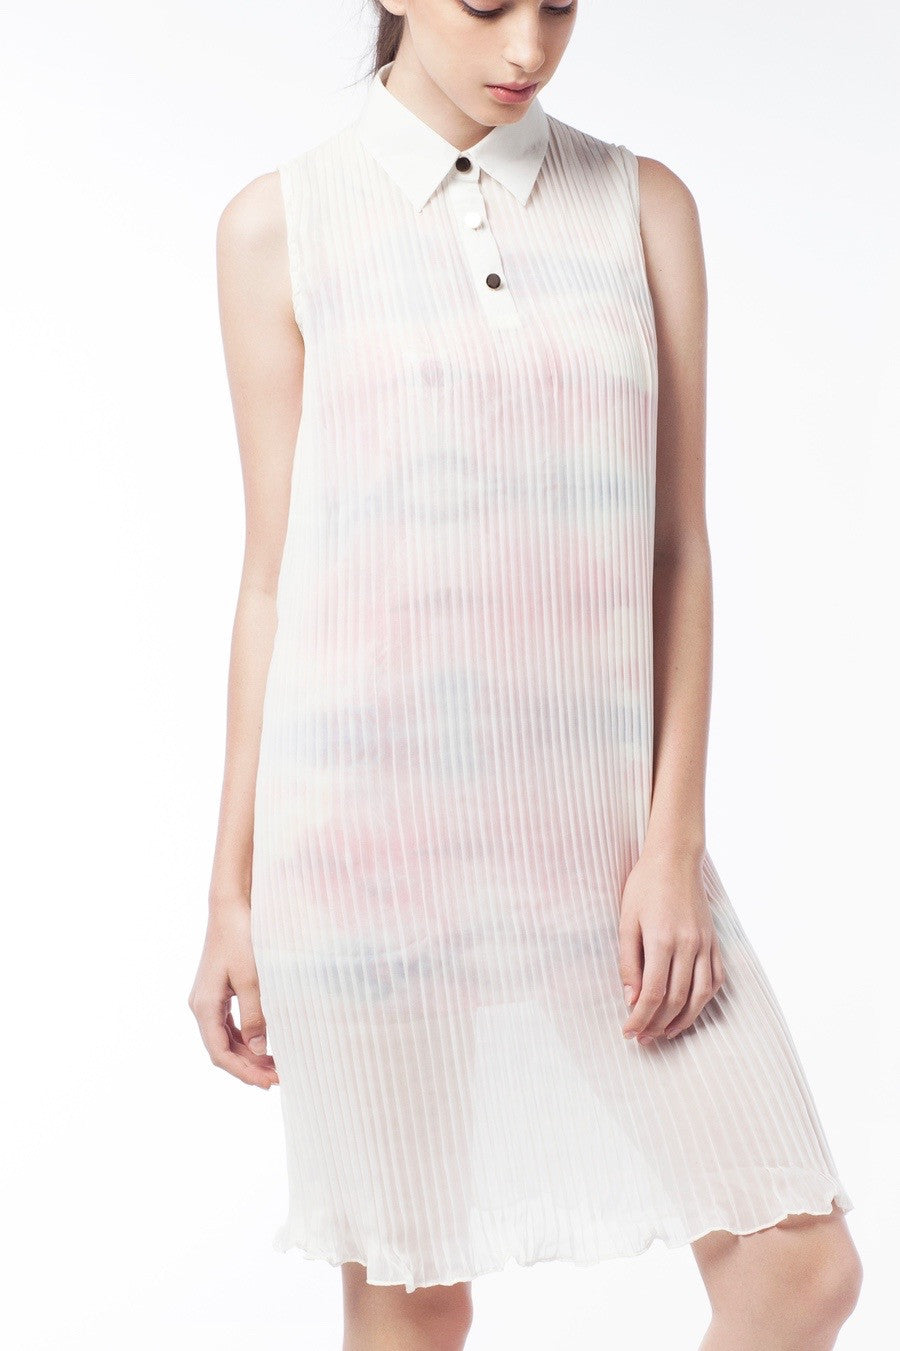 2 In 1 Mysterious Sheer Pleat Dress - GlanceZ   - 4